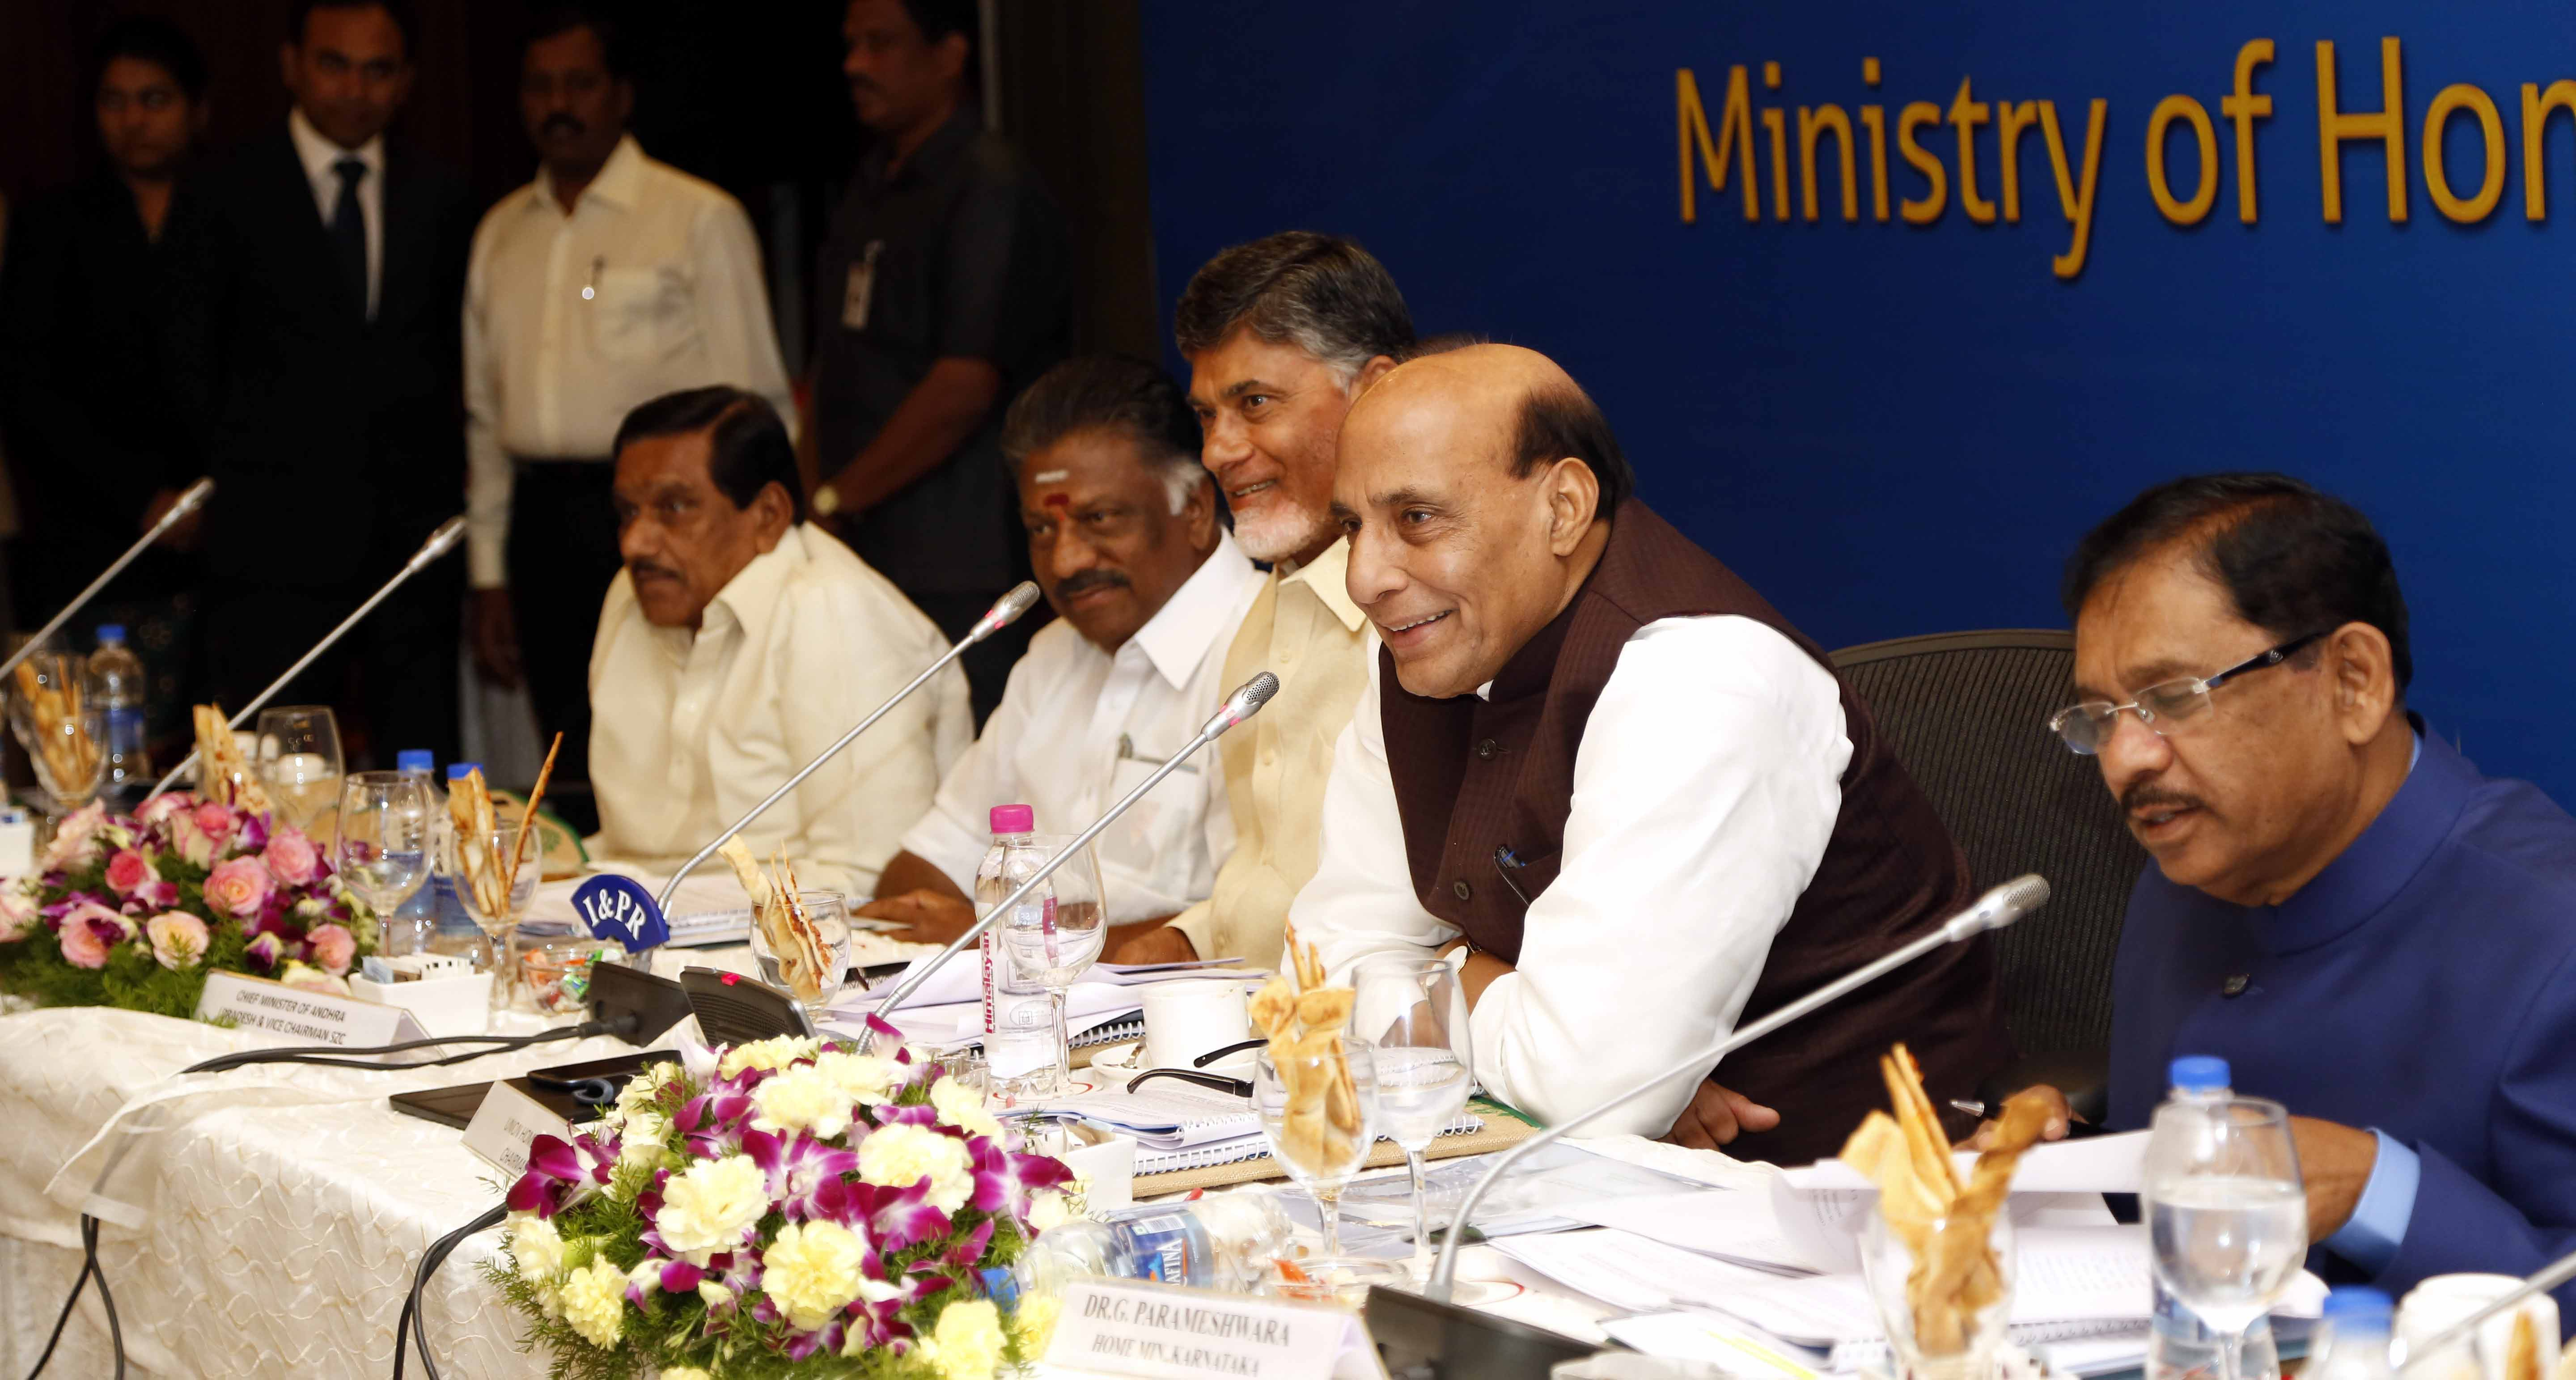 26th Southern Zonal Council meeting held in Vijayawada on 12.12.2015. was Attended AP CM Naidu, TS HM Narasimha Reddy, Karnataka Home Minister G.Parameshwara, Ajay Kumar Singh, Kerala Water Resources Minister PJ Joeseph and Senior officials from the